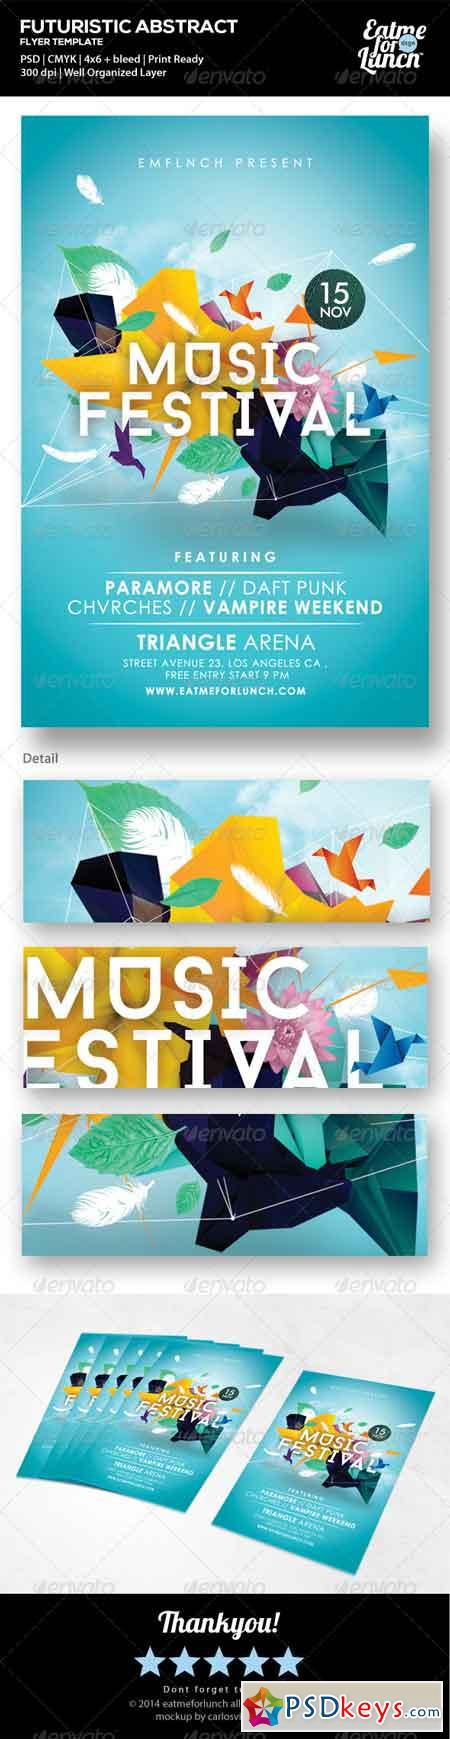 Futuristic Abstract Gigs Festival Flyer Templates 7056792